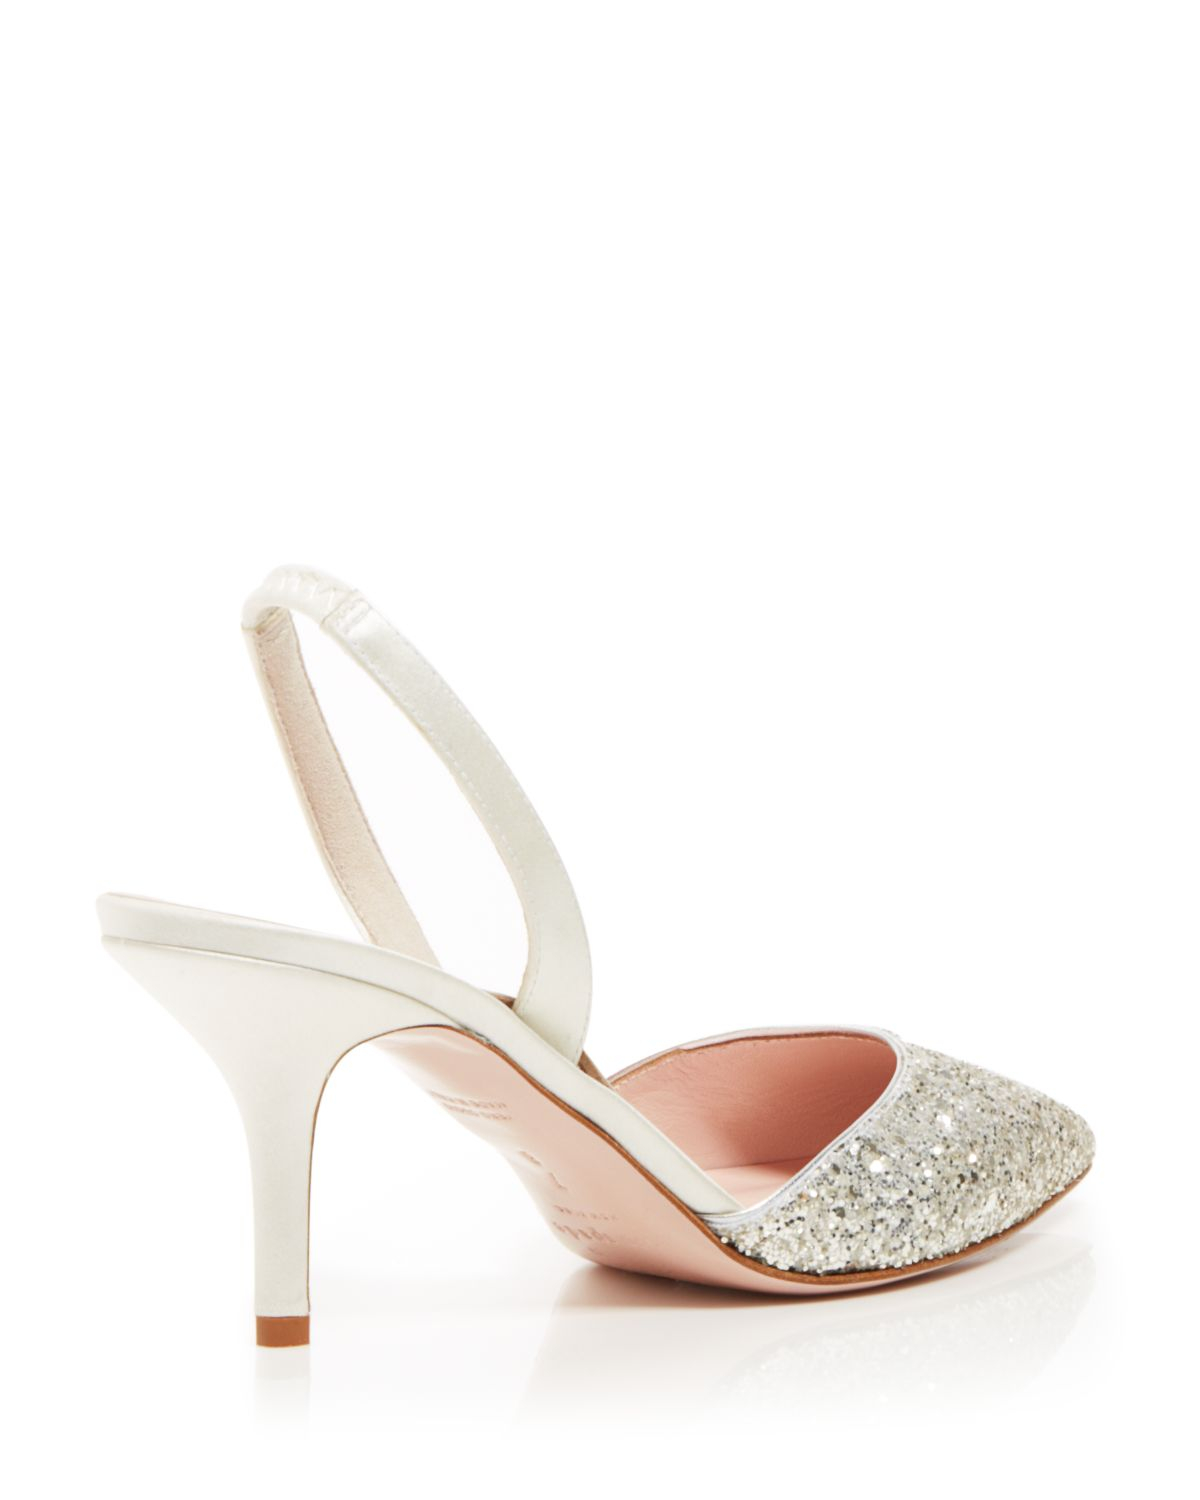 221b2d9cf420 Lyst - Kate Spade Pointed Toe Slingback Evening Pumps - Jeanette Mid ...